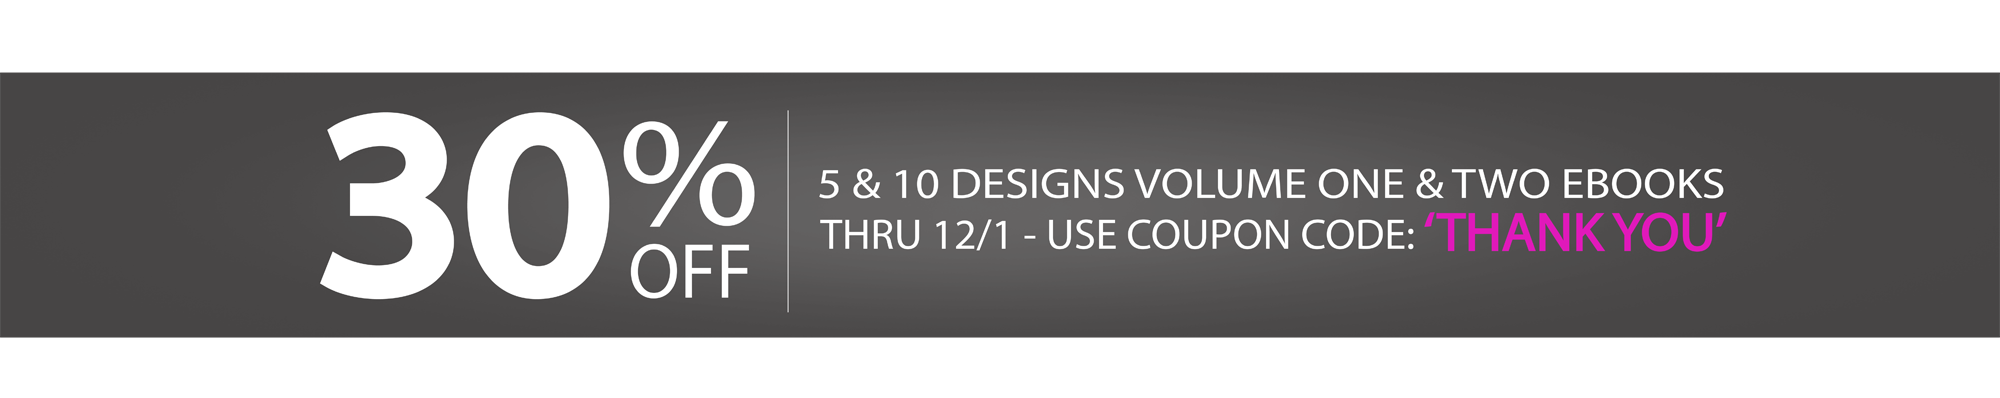 FIVE AND TEN DESIGNS WEBSITE BANNER